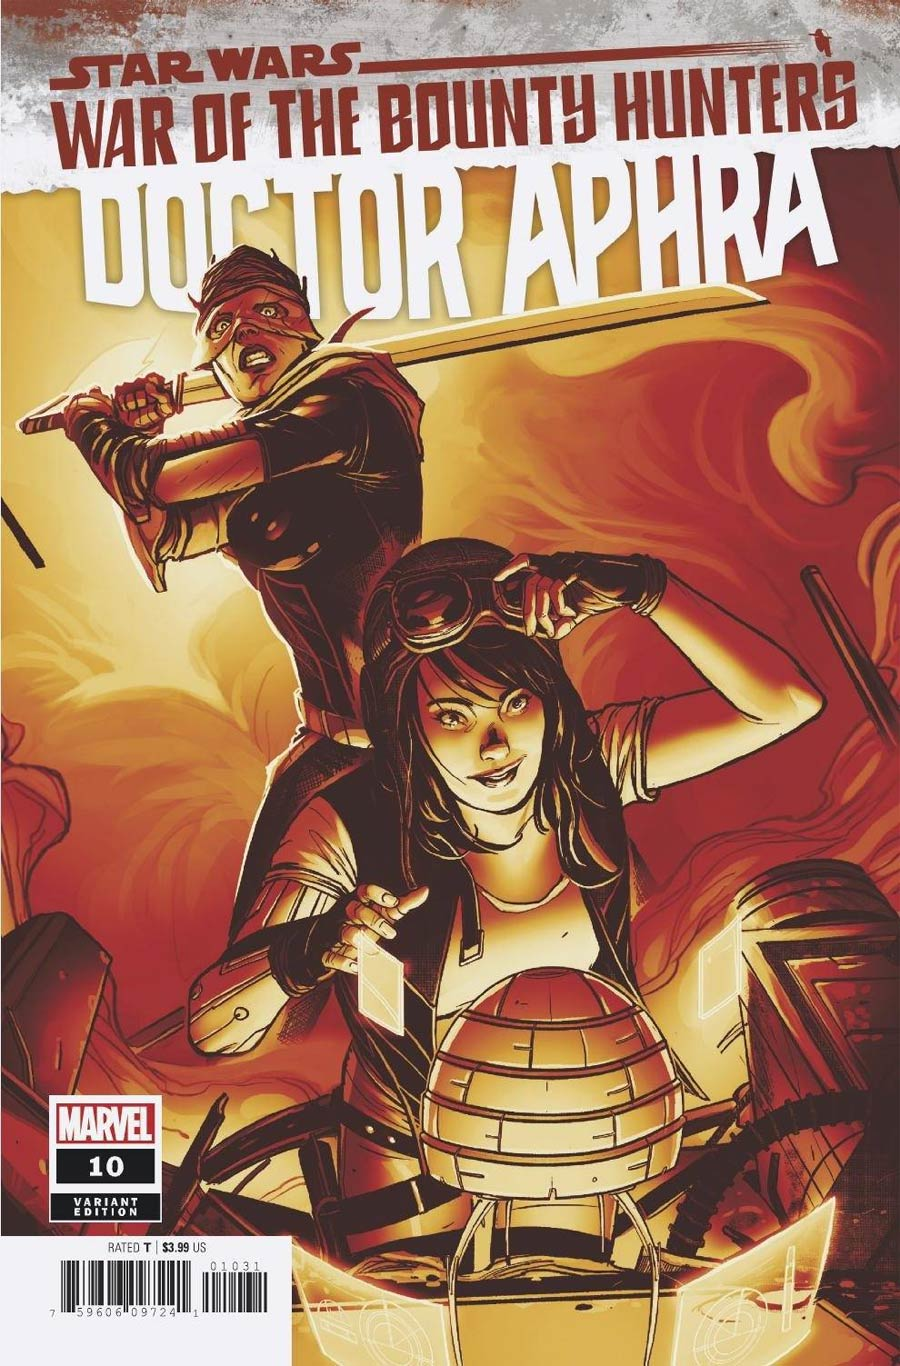 Star Wars Doctor Aphra Vol 2 #10 Cover B Variant Sway Crimson Cover (War Of The Bounty Hunters Prelude)